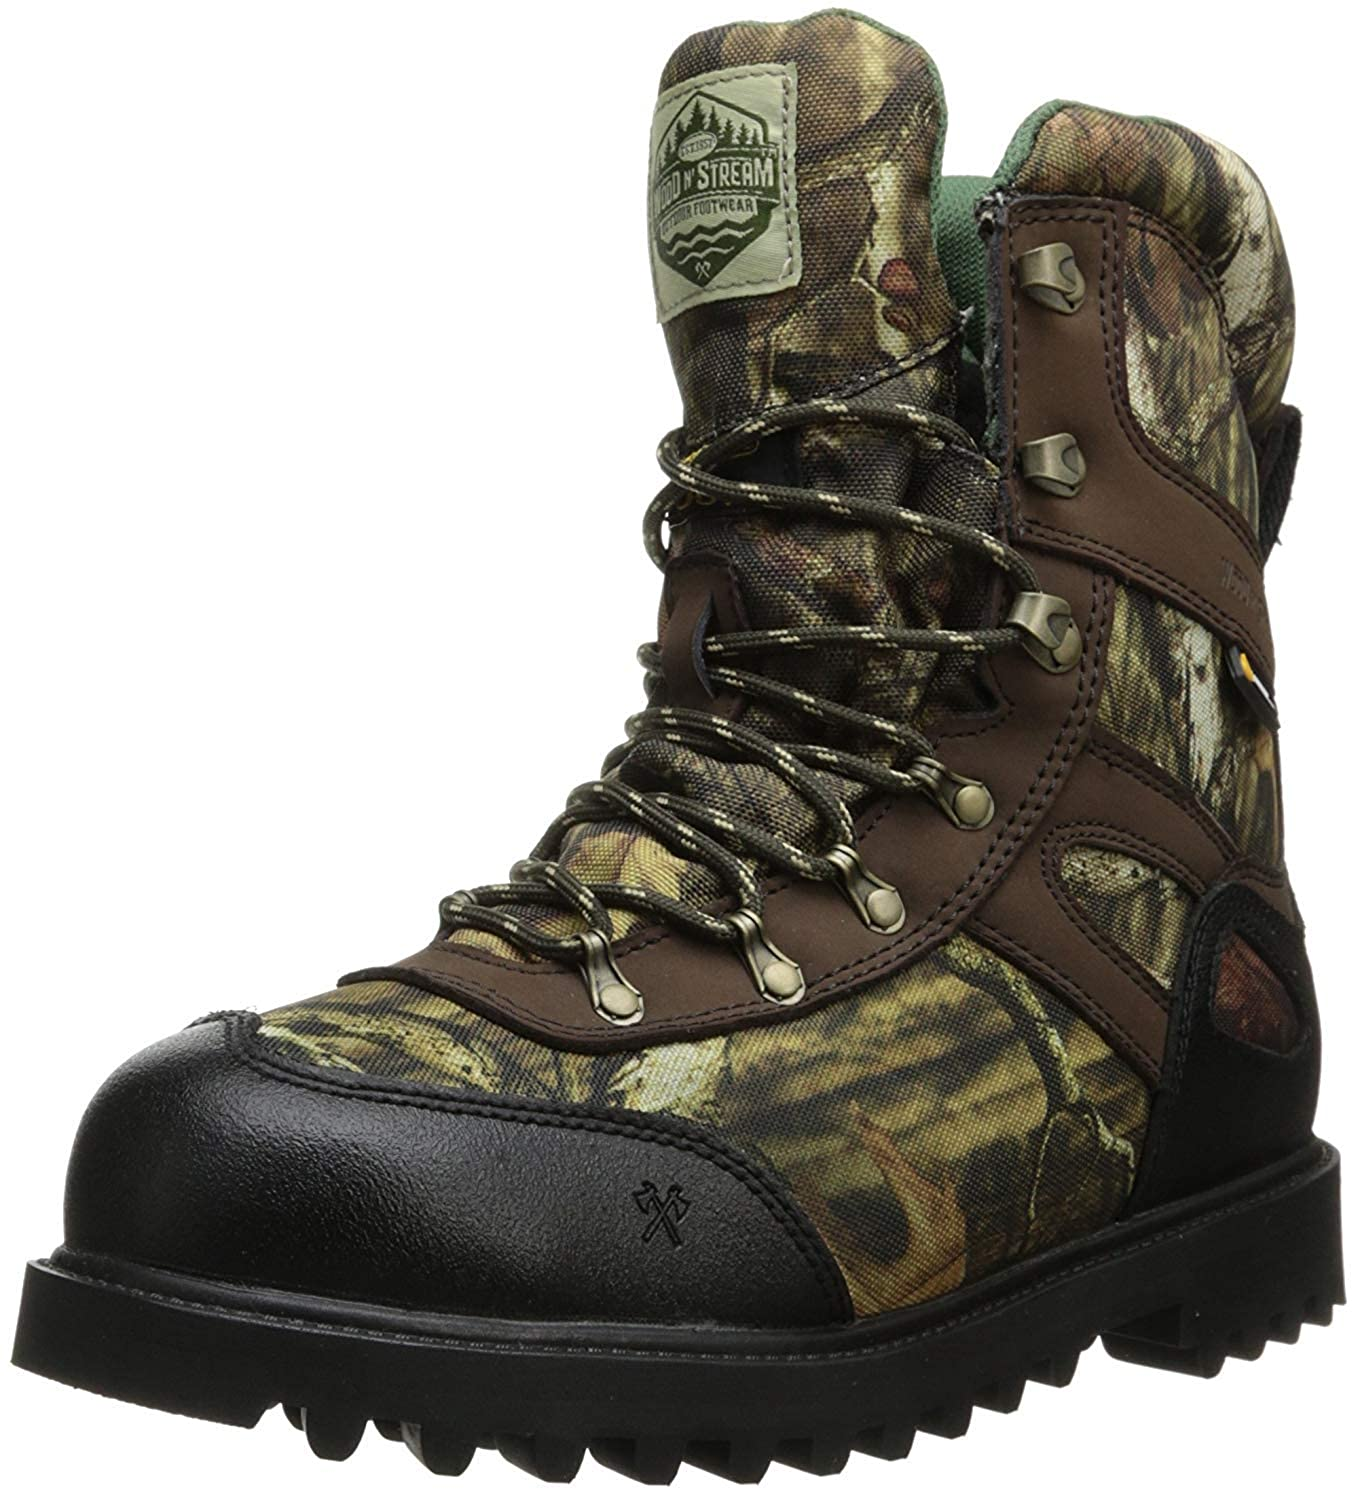 WOOD N' STREAM Men's 1003 Interceptor Boot Wood n' Stream 1003 Interceptor-M